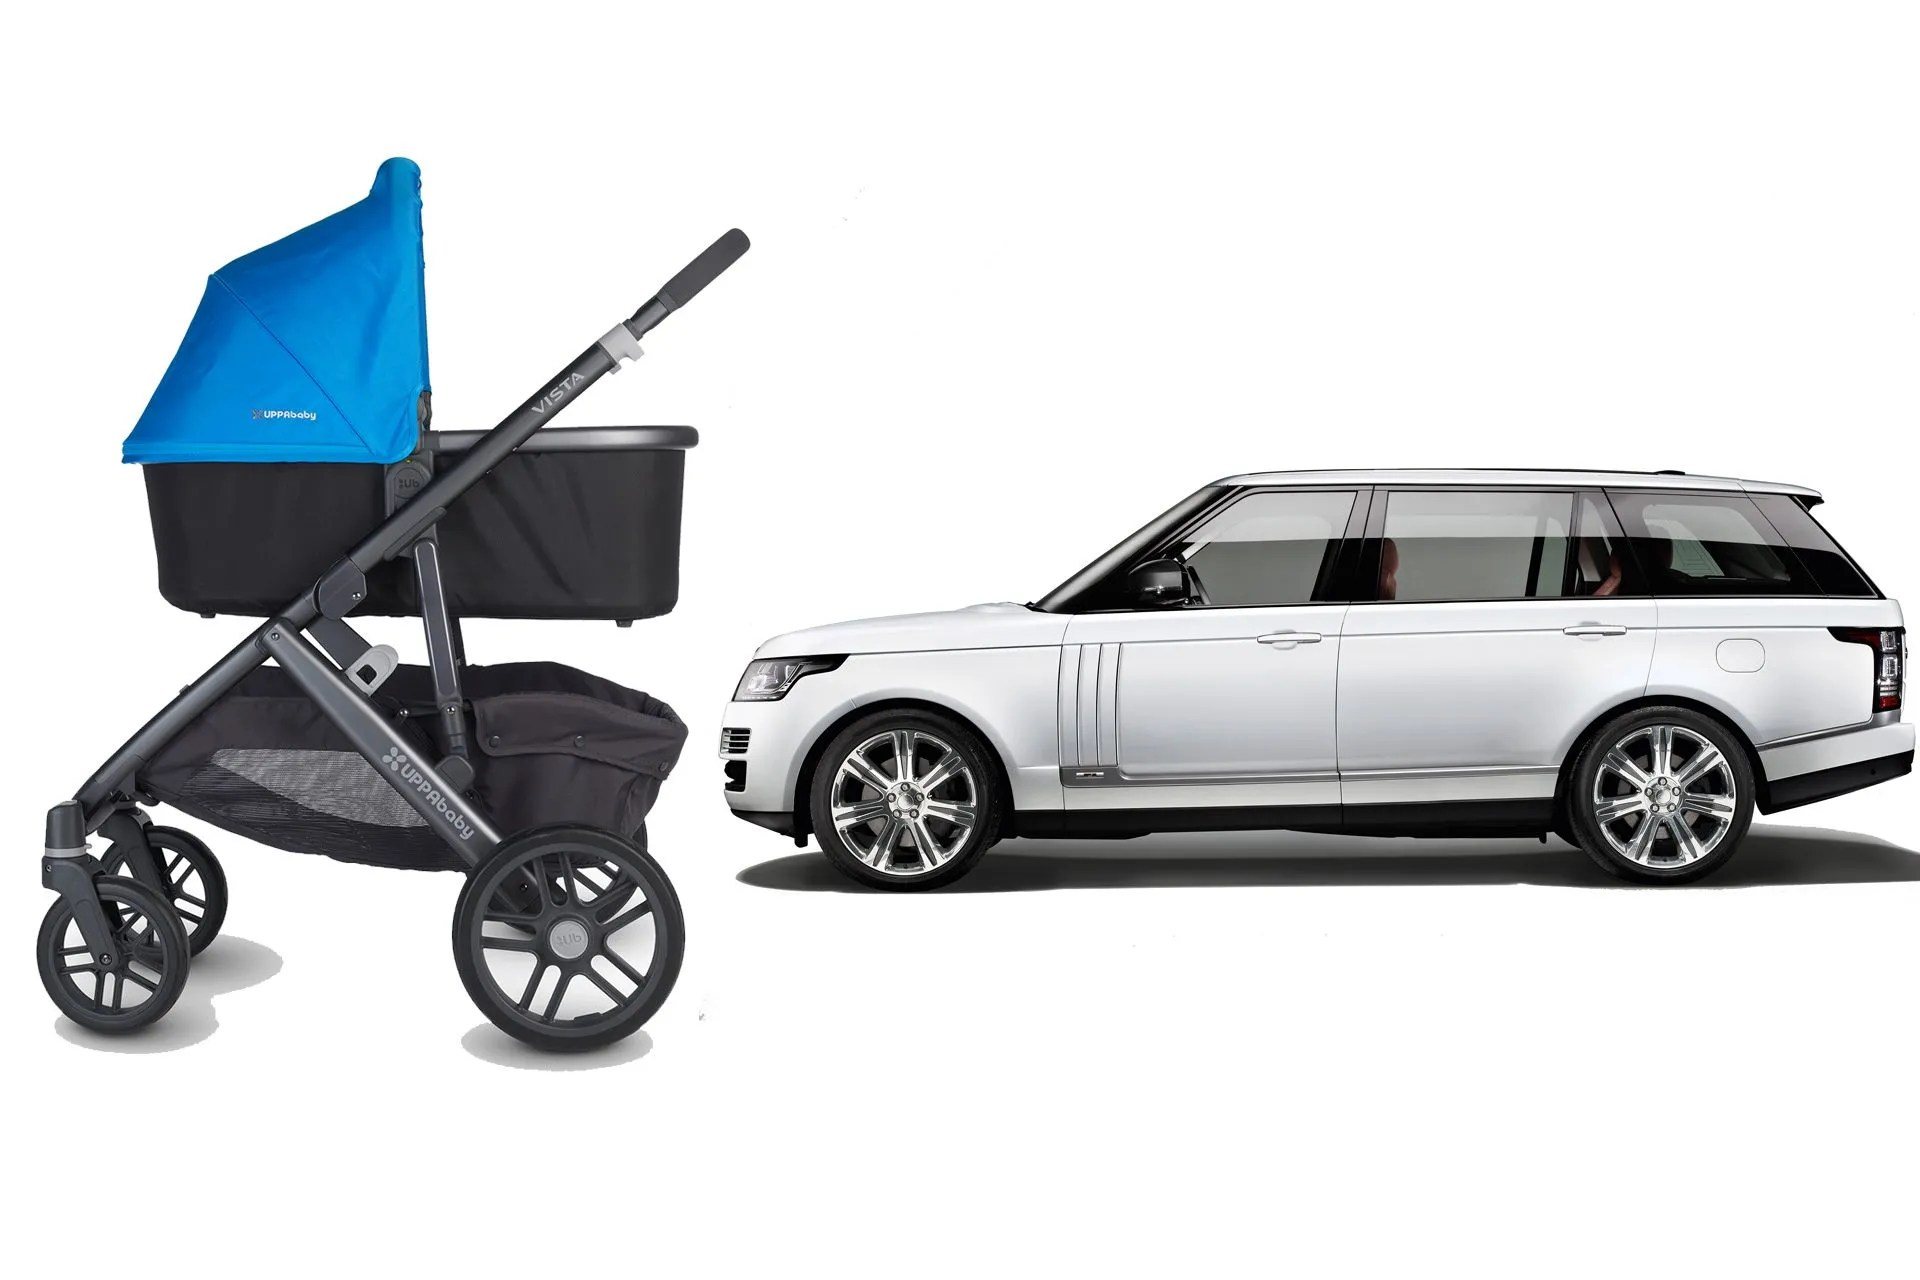 Baby Buggy Mercedes Bugaboo Bee3 And Baby Jogger Buggys Tested In The Gq